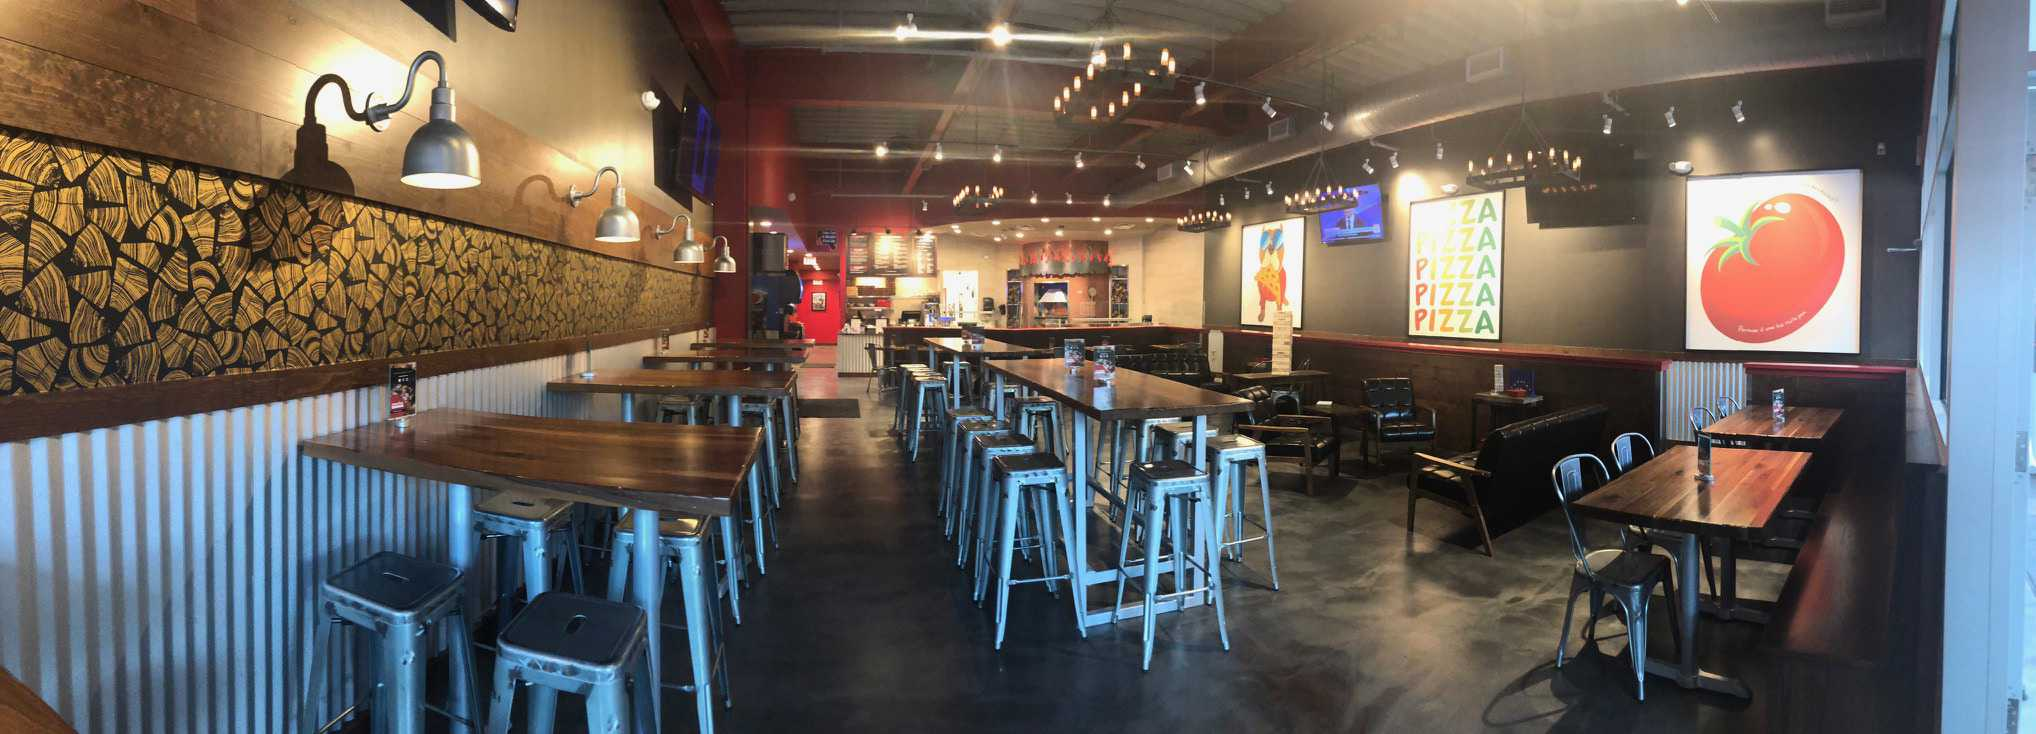 Smokin' Oak Wood-Fired Pizza Ames – A Refreshed New Look